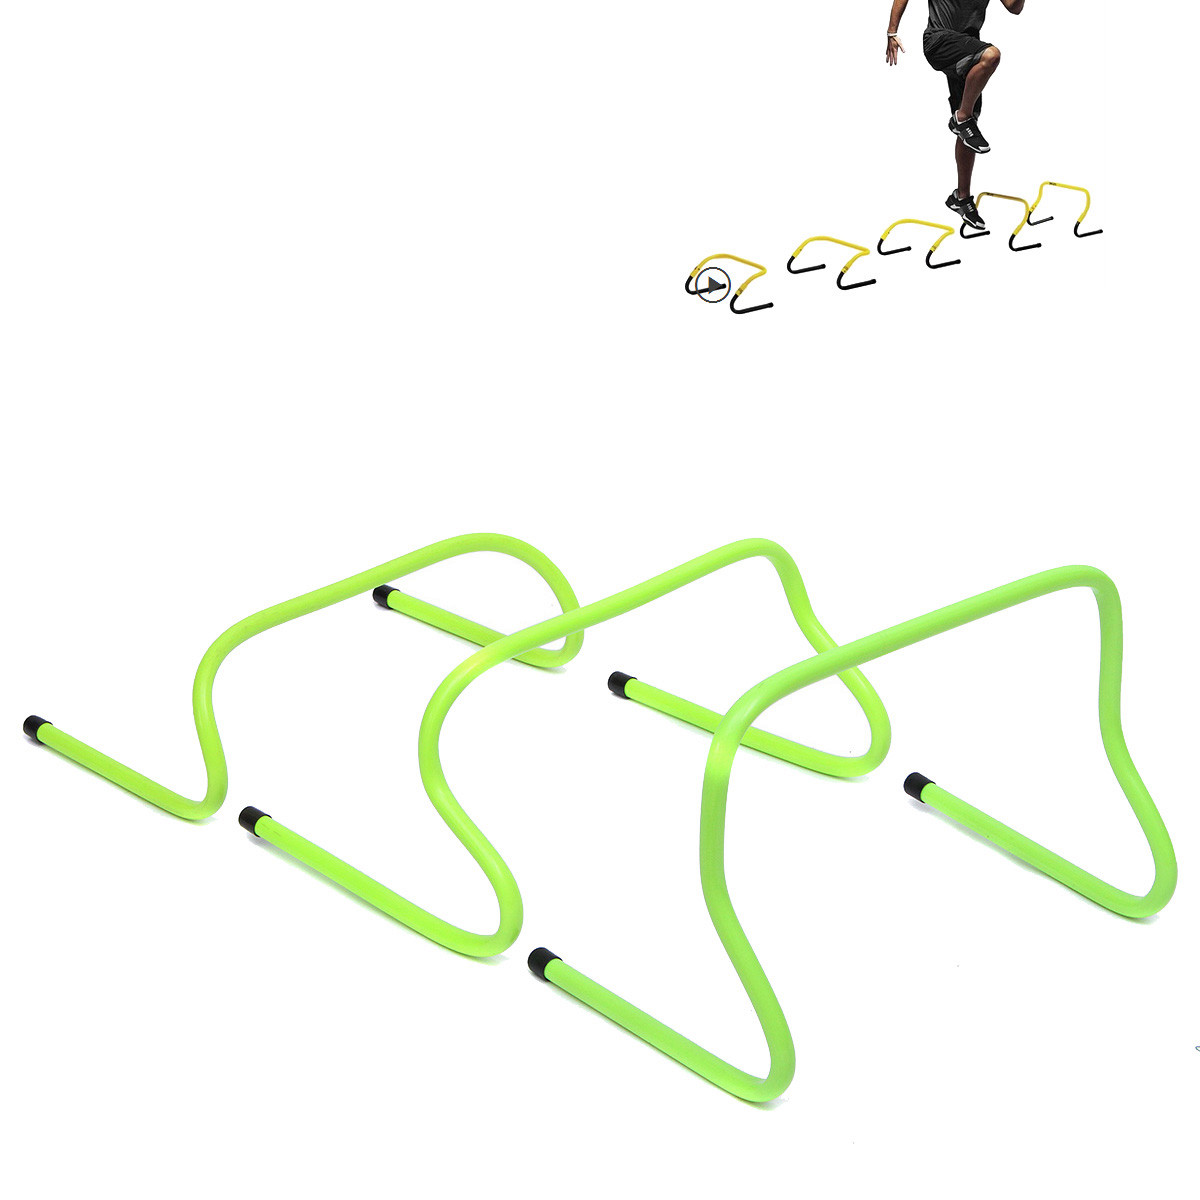 1pcs Soccer Agility Ladder Soccer Hurdle Football Traning Barrier Frame For Soccer Speed Training Equipment